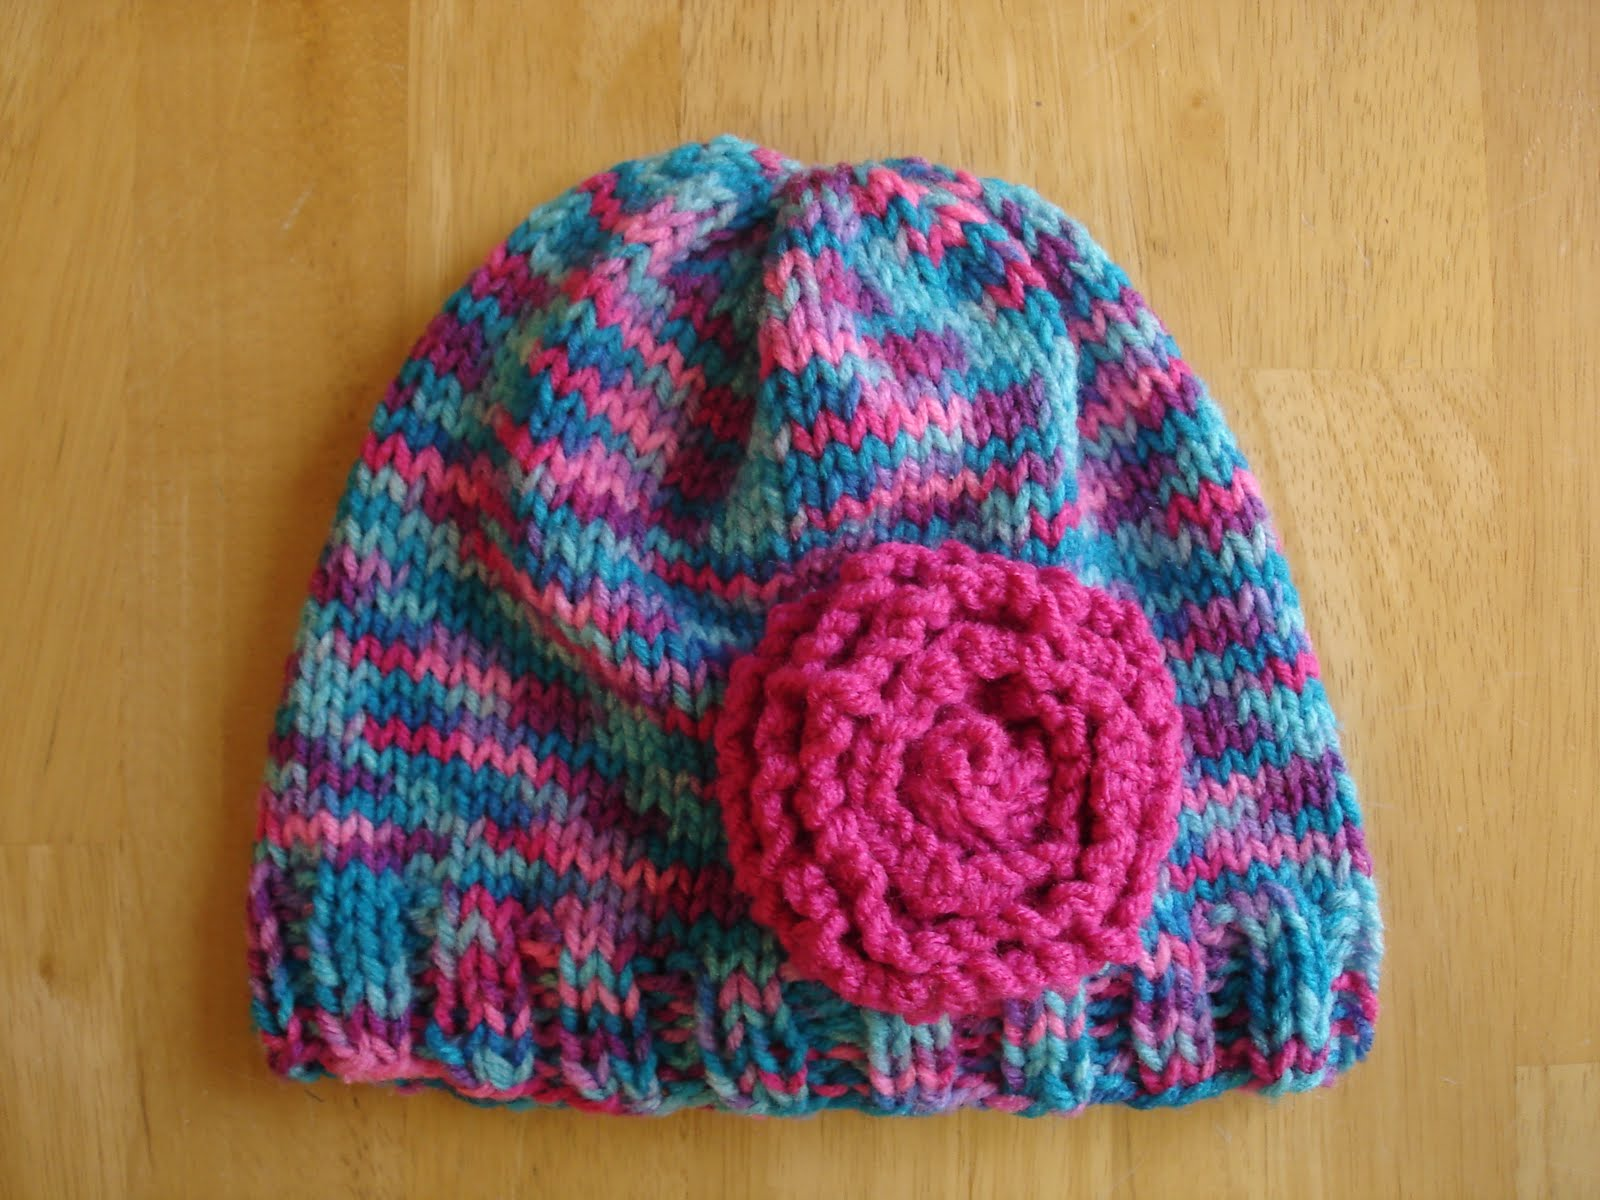 Knitting Pattern For A Dolls Hat : Fiber Flux: Free Knitting Pattern...Baby Doll Hats!